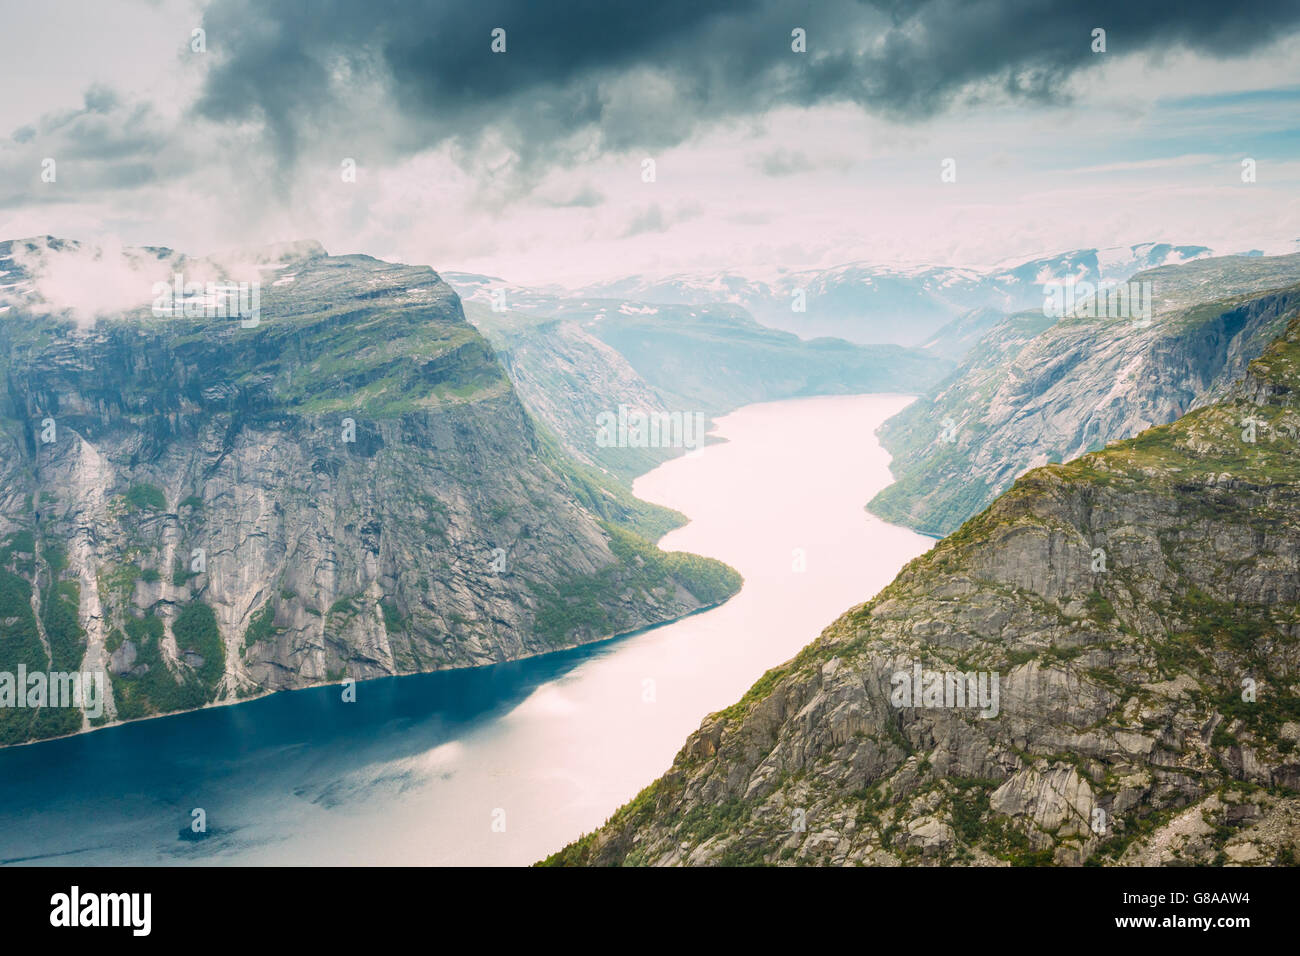 Scenic View From Rock Trolltunga - Troll Tongue In Norway - Stock Image